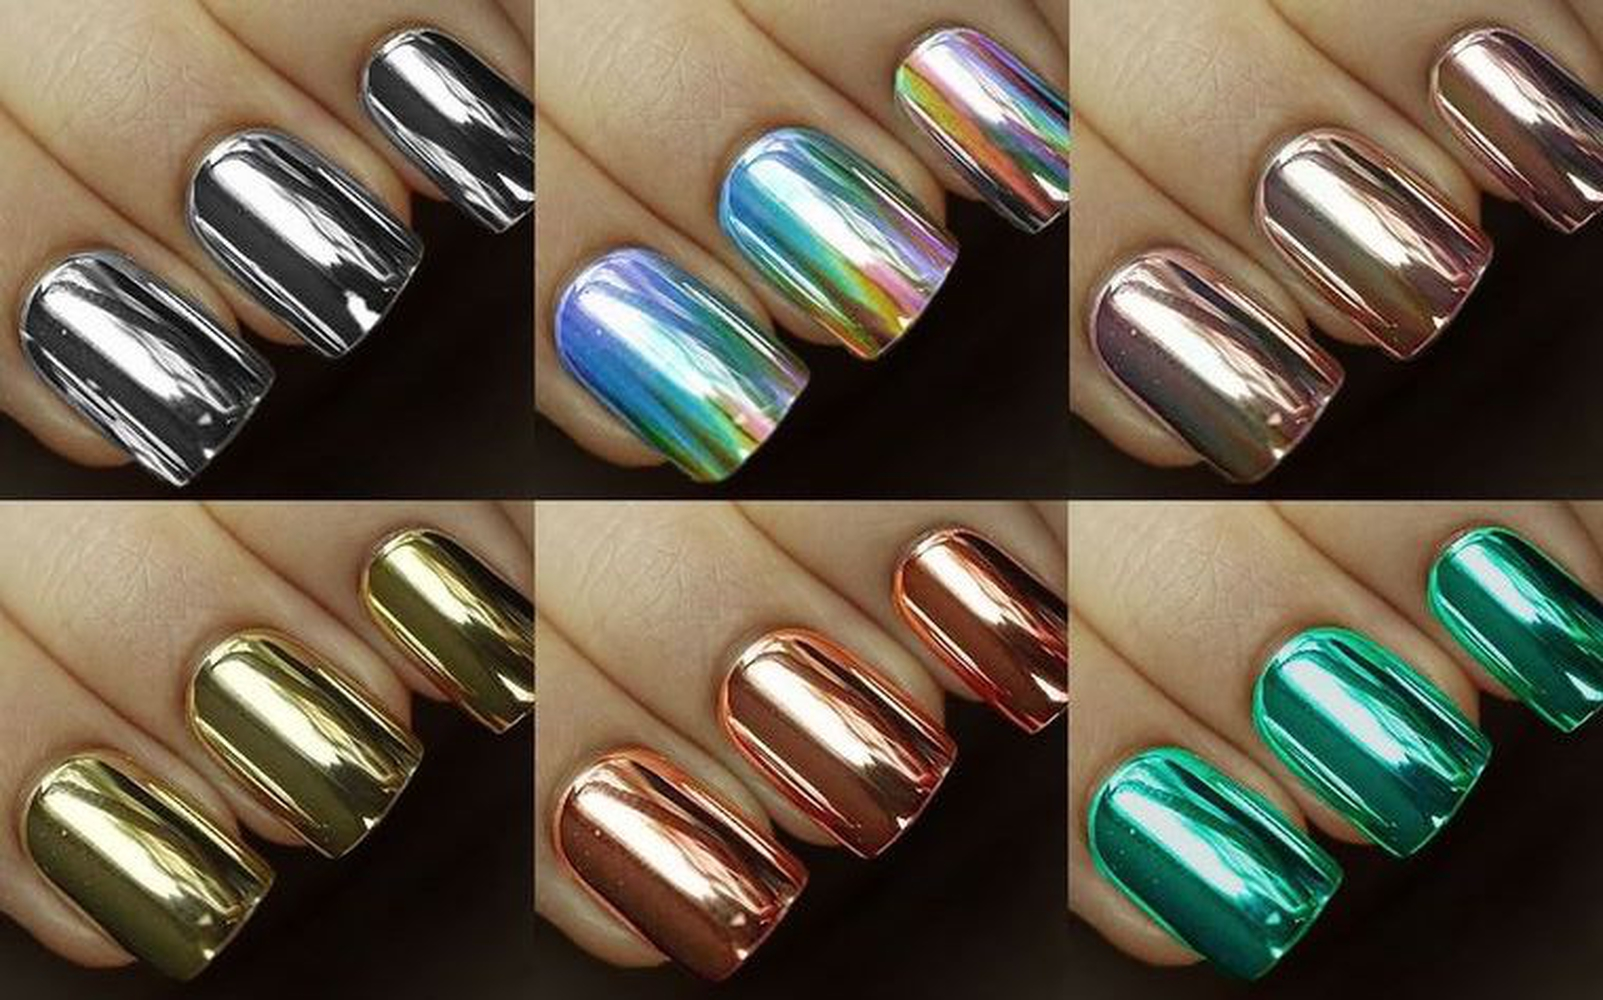 MondaysAreForManicures - Chrome Nails? It Works! | Kamdora